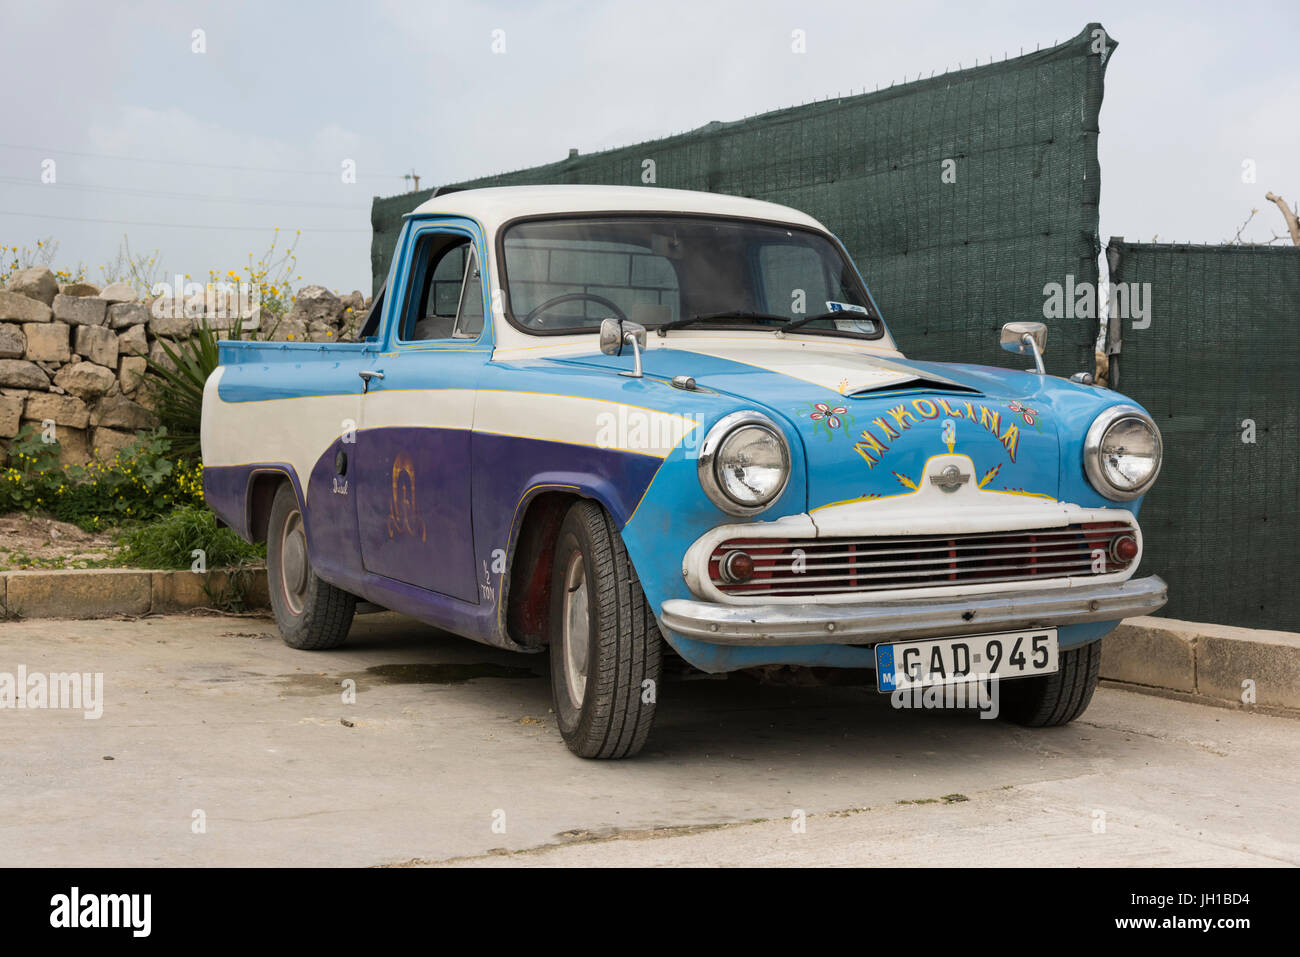 An old austin a55 pick up car or truck in Malta Stock Photo ...